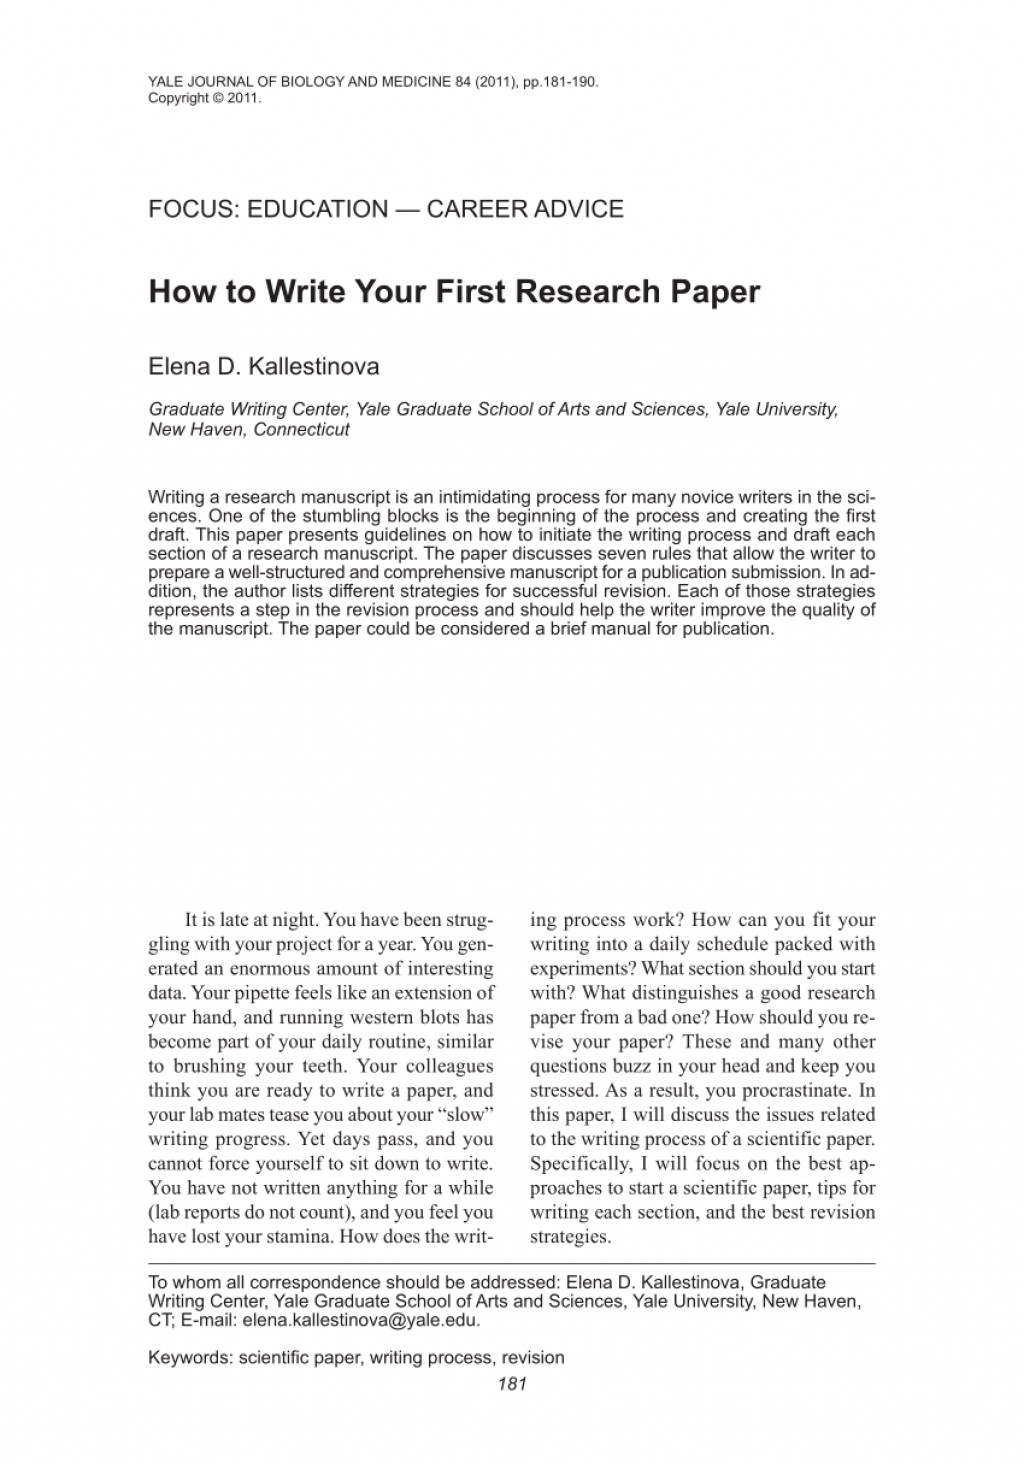 003 Write Research Paper Outstanding A Can You In Day How To 3 Page Fast For Me Free Large